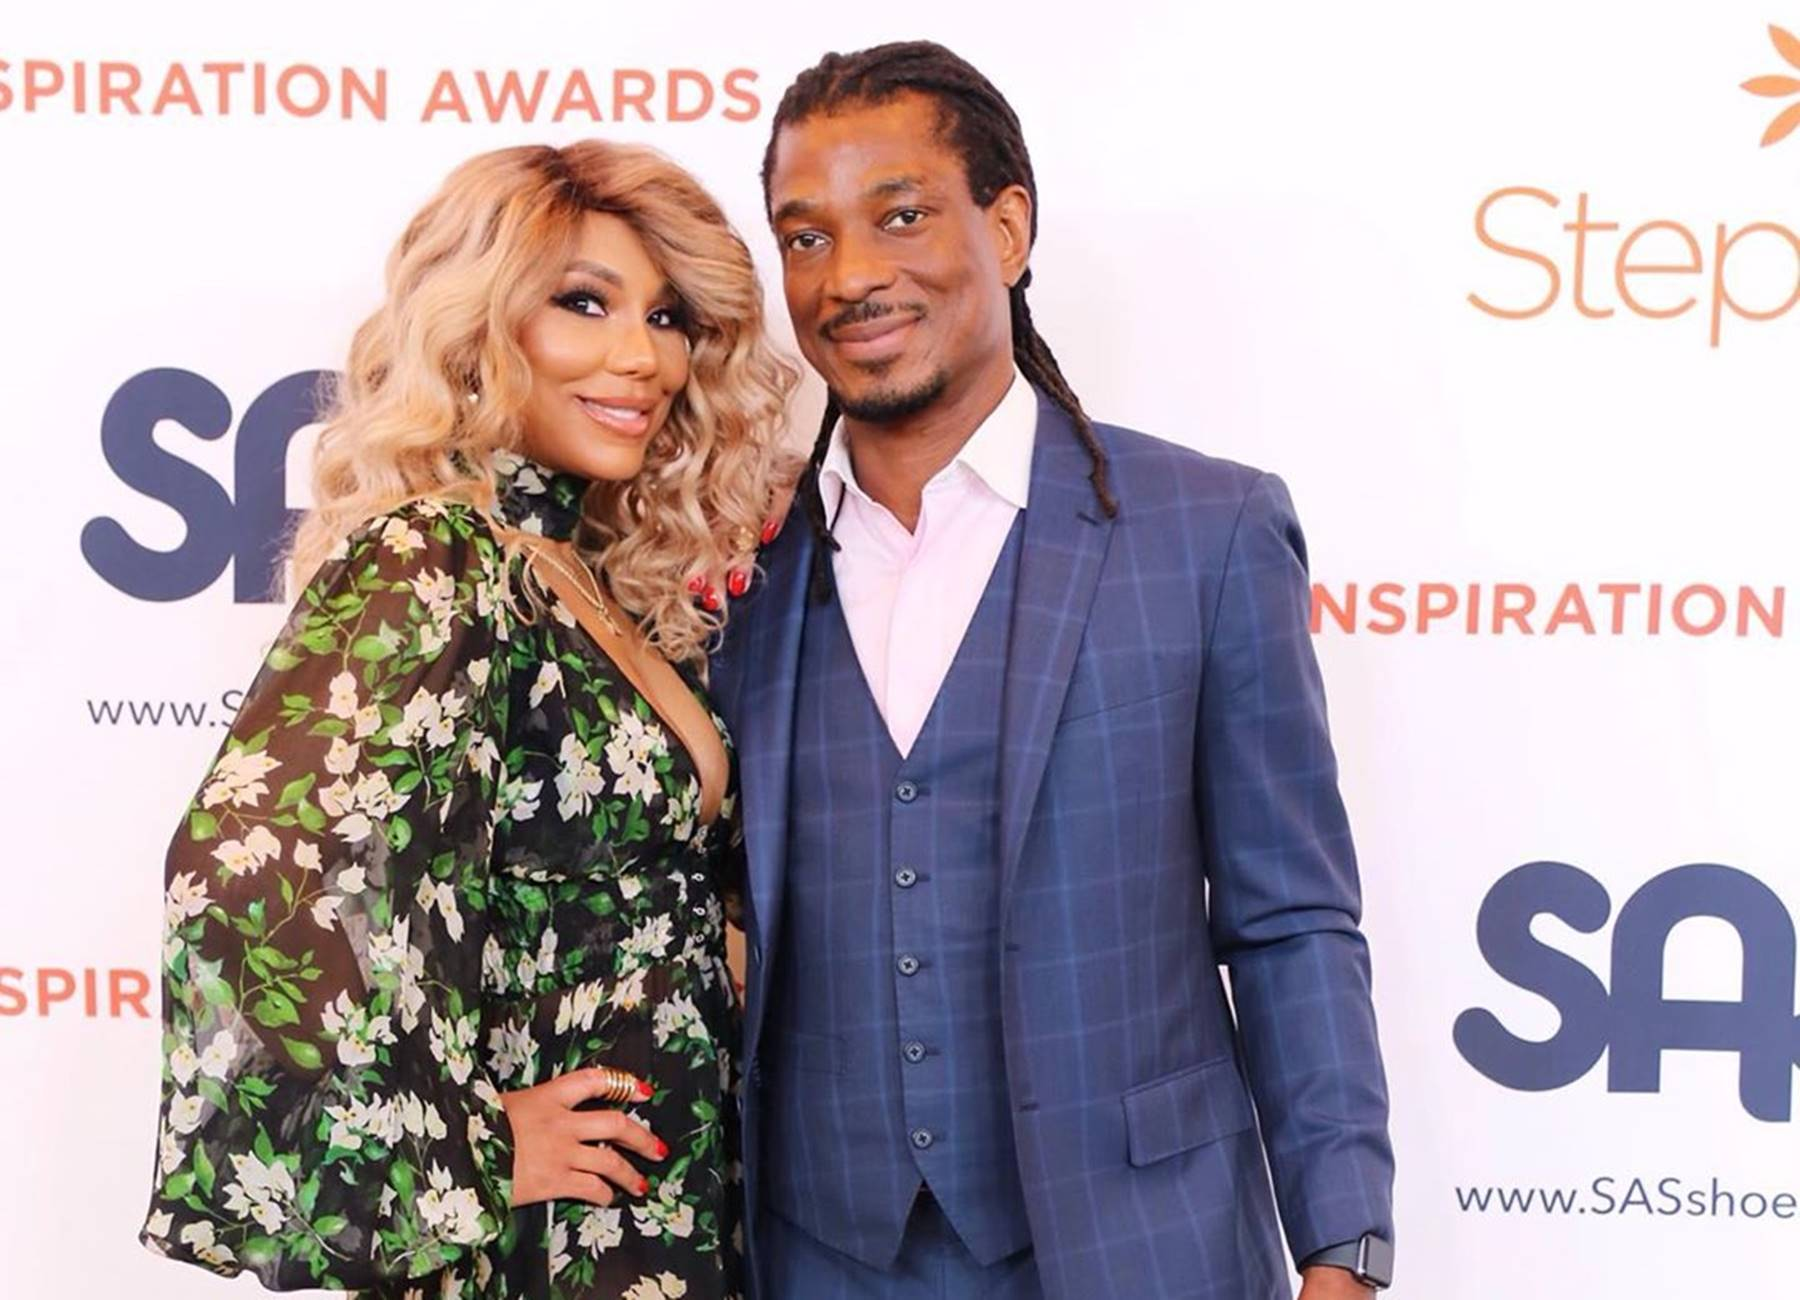 david-adefeso-claims-vincent-herbert-was-going-to-send-goons-after-him-and-says-tamar-braxton-is-threatening-to-do-it